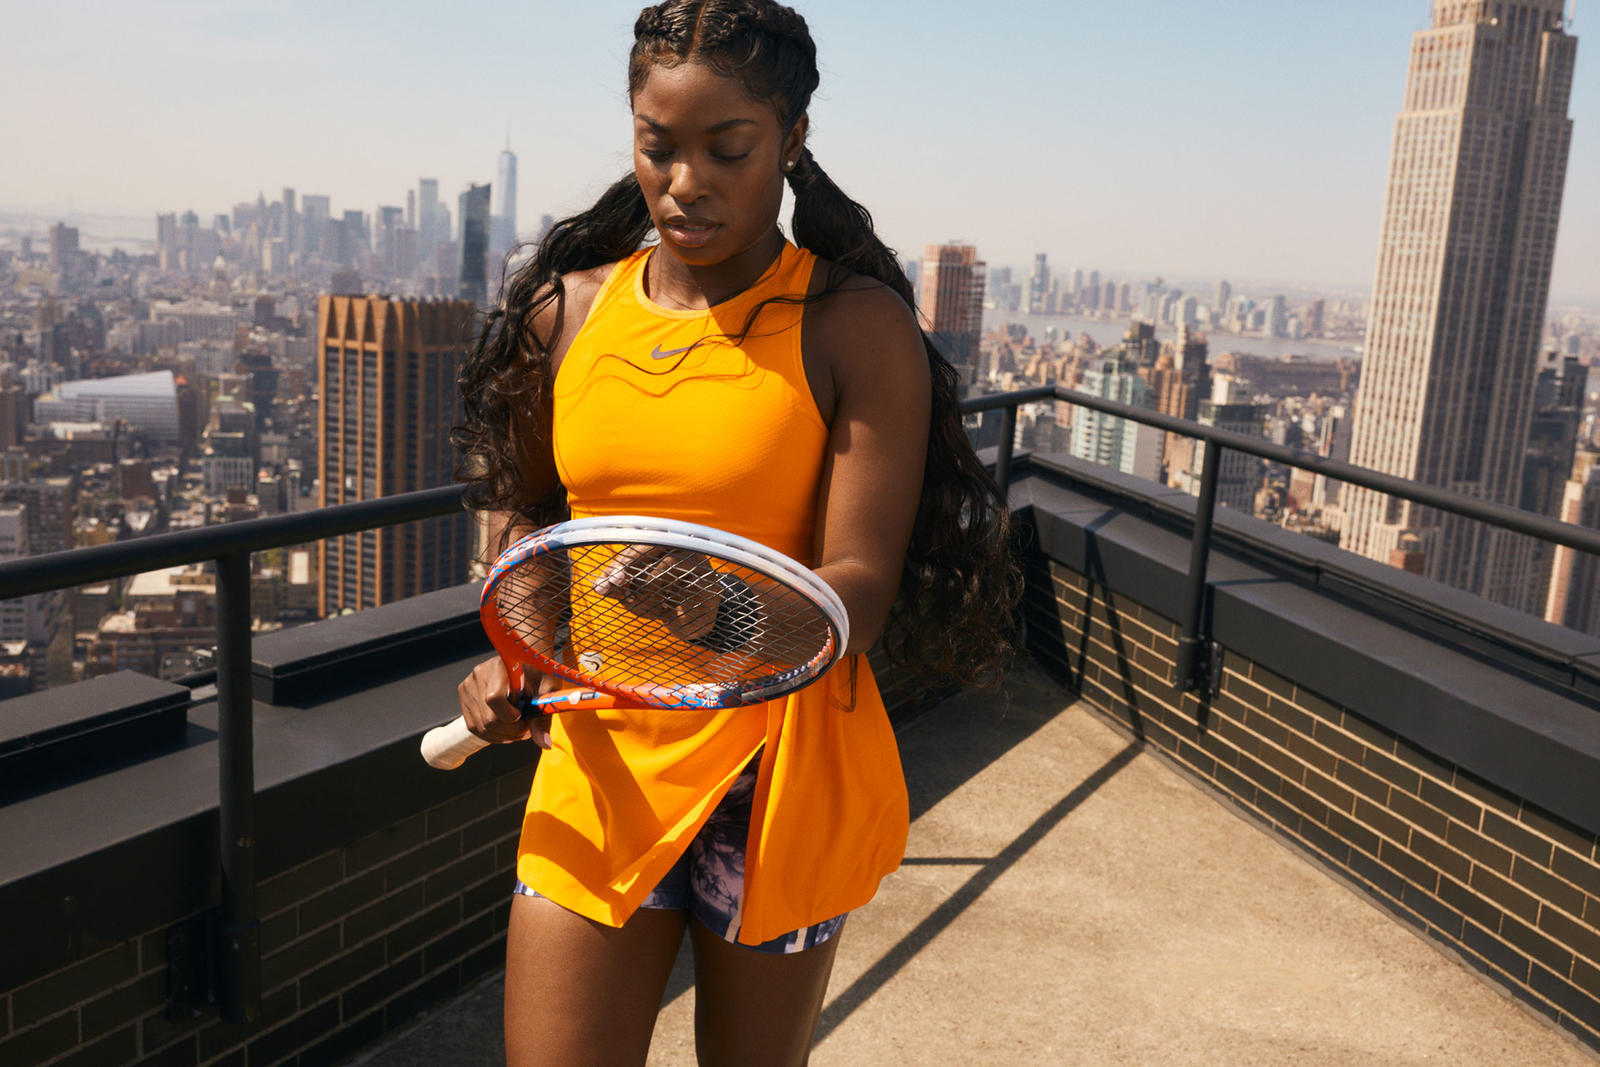 fa18 nc sloanestephens usopen secondary 003 re native 1600